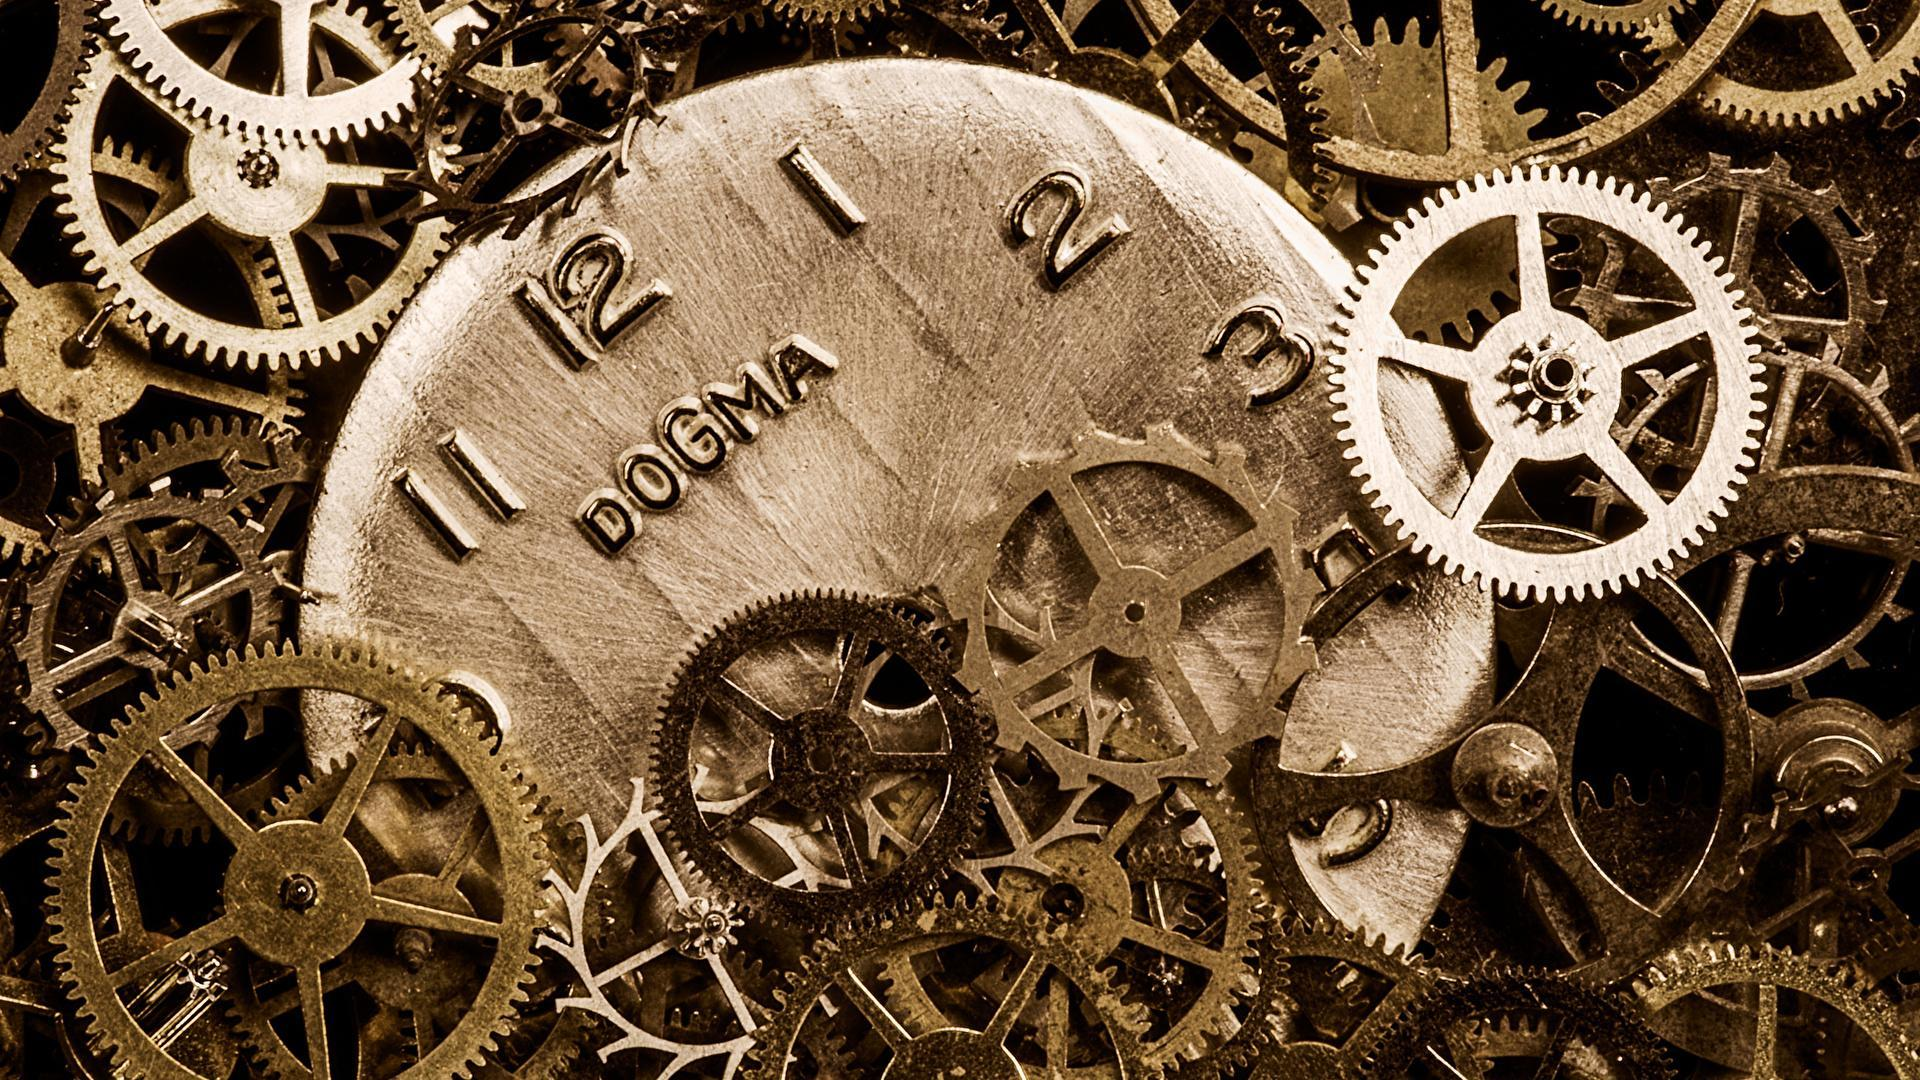 Clock Mechanism Live Wallpaper for Android   APK Download 1920x1080